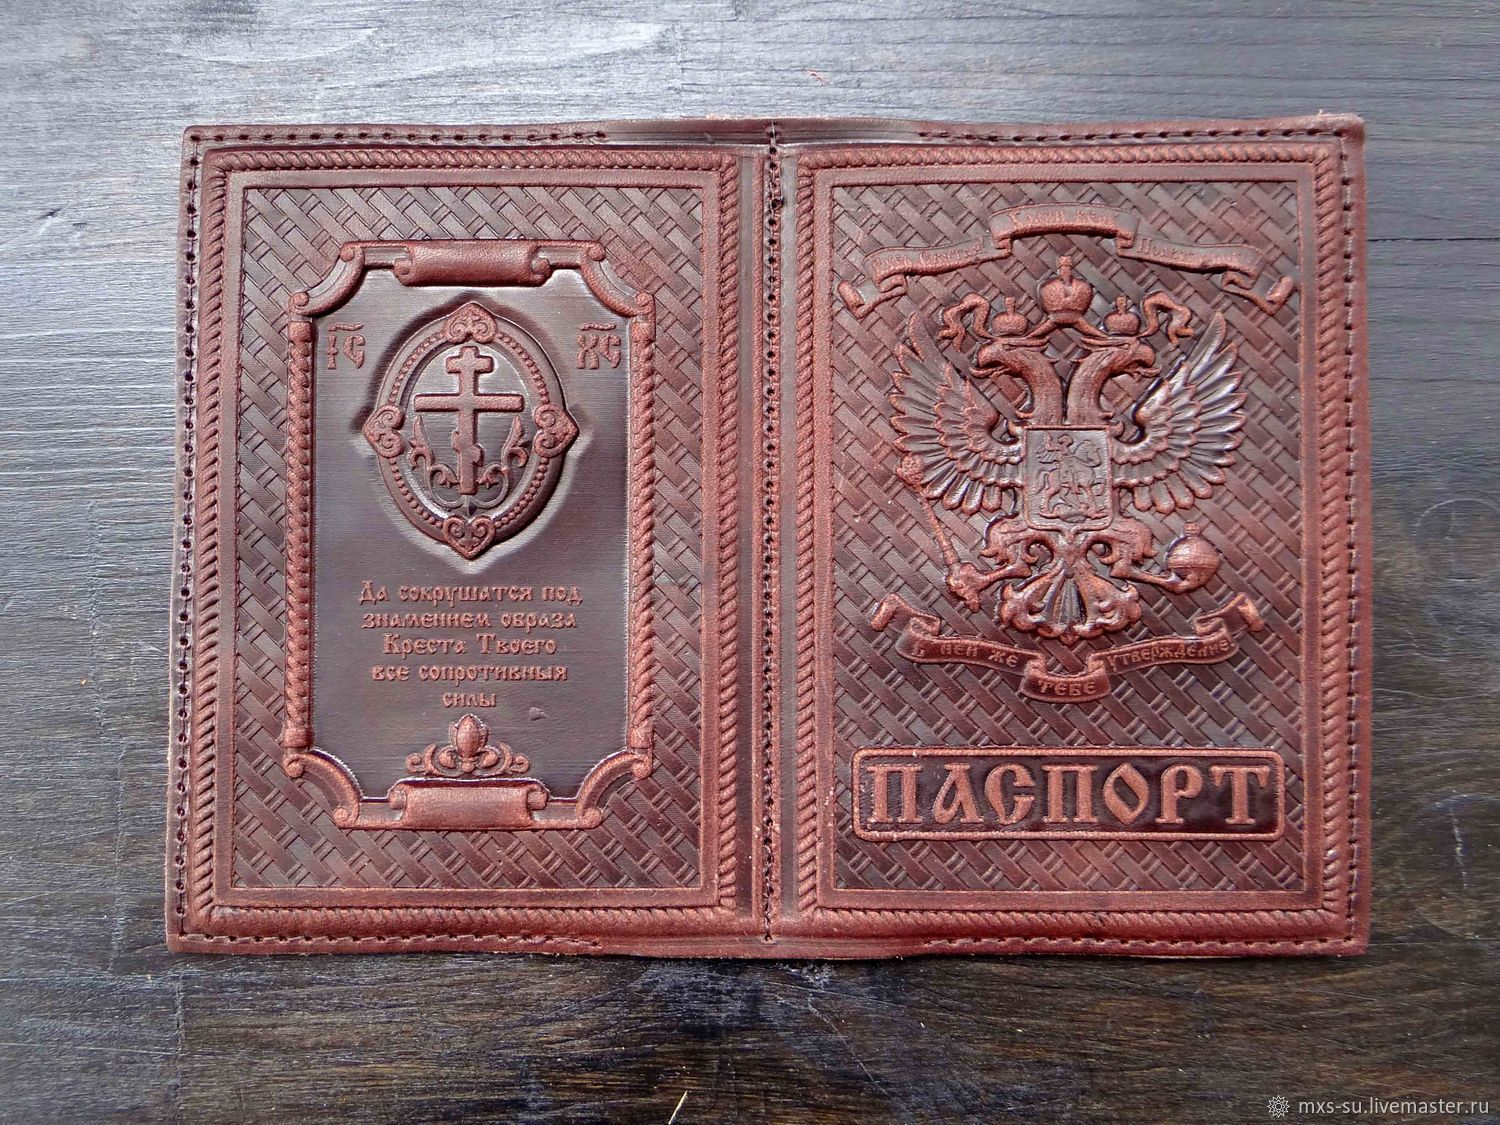 Passport cover with insert, Passport cover, Tyumen,  Фото №1